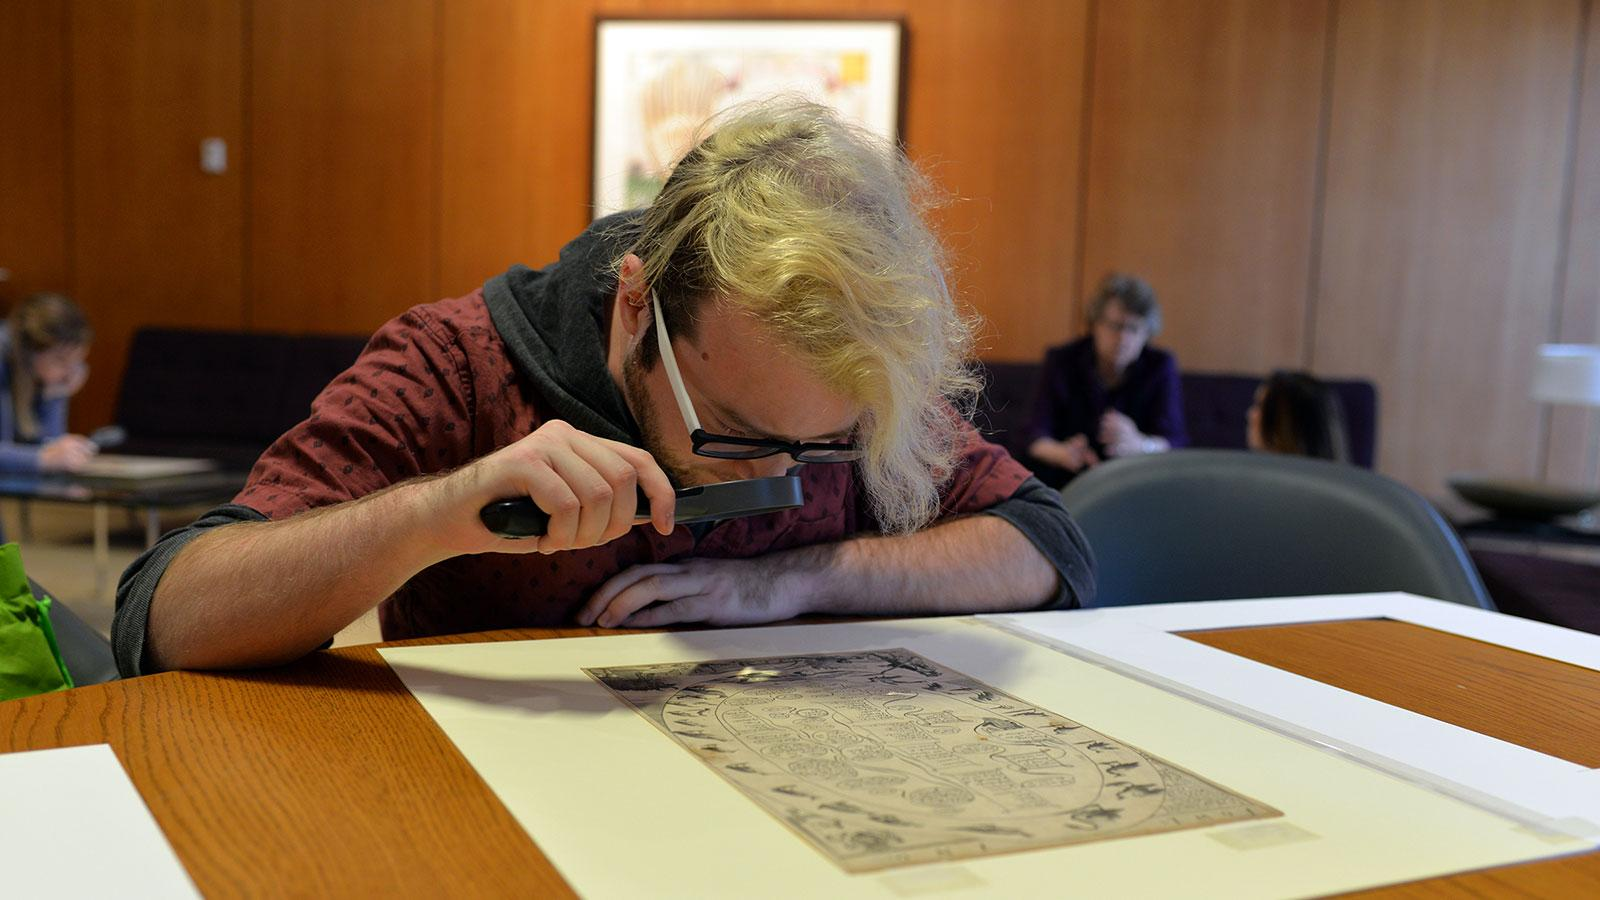 art history student looking at archival print through magnifying glass